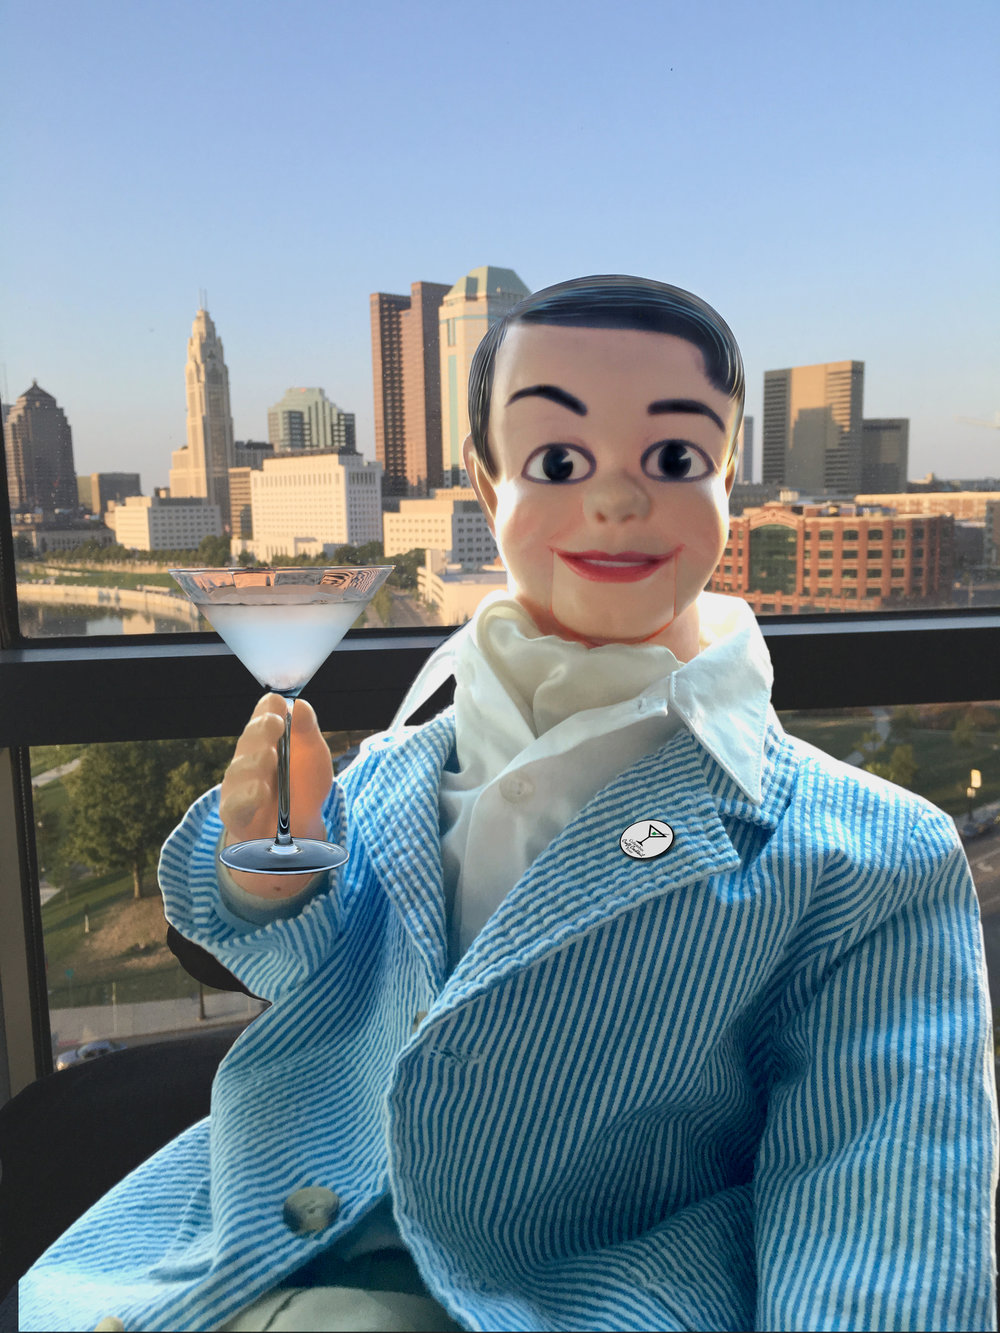 I've experienced some of the best bartenders in the world and some of the finest are right here in Columbus. Discover Columbus' award-winning craft cocktail culture. — I.M.Bibe